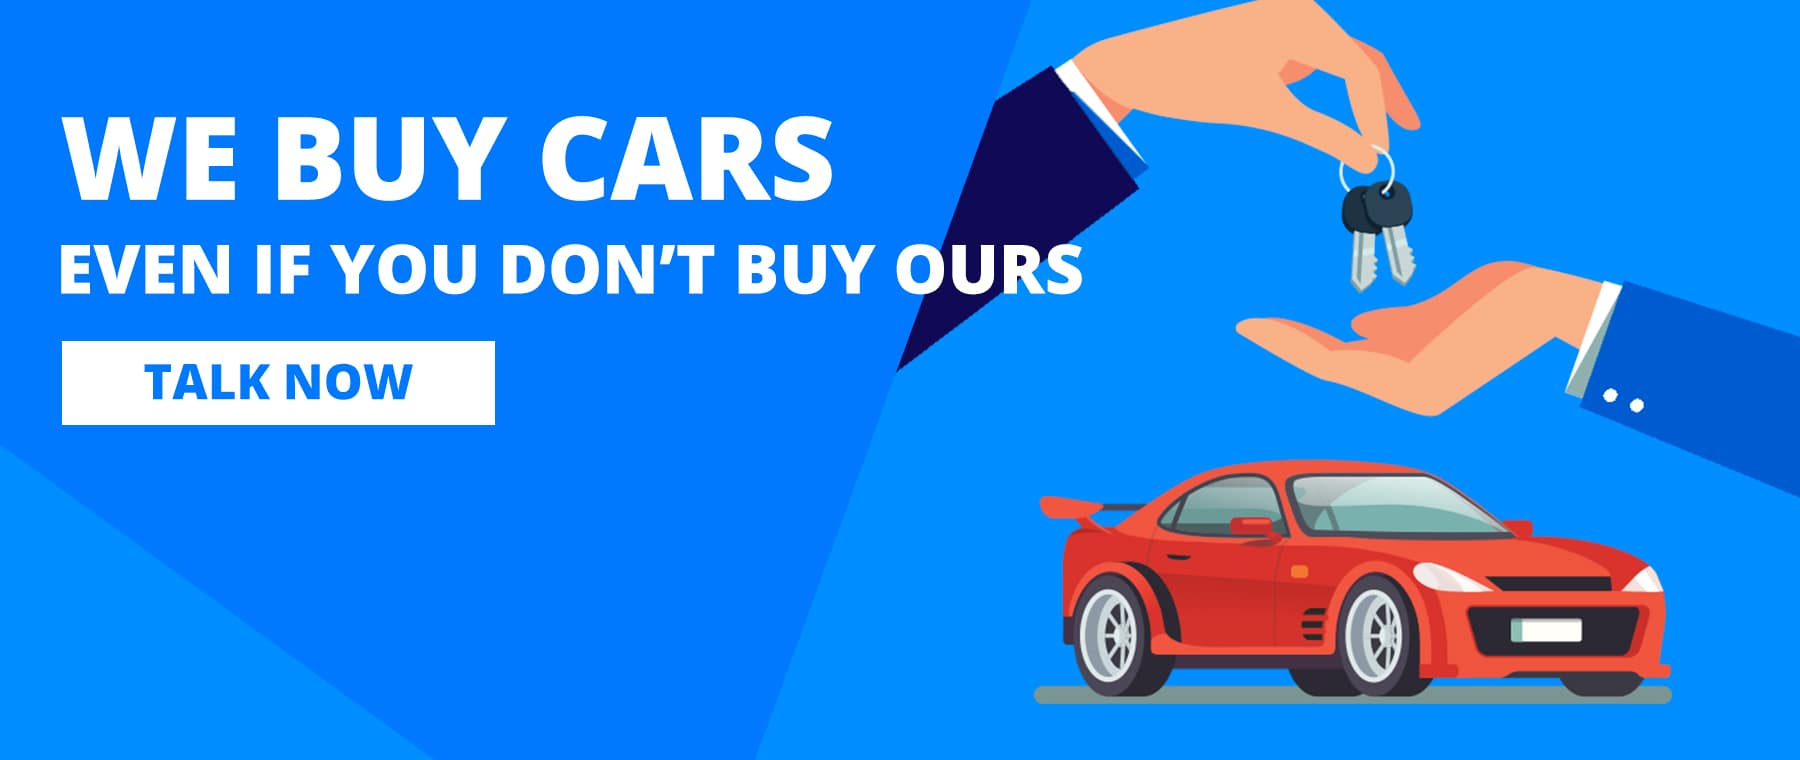 We Buy Cars. Even If you don't buy ours